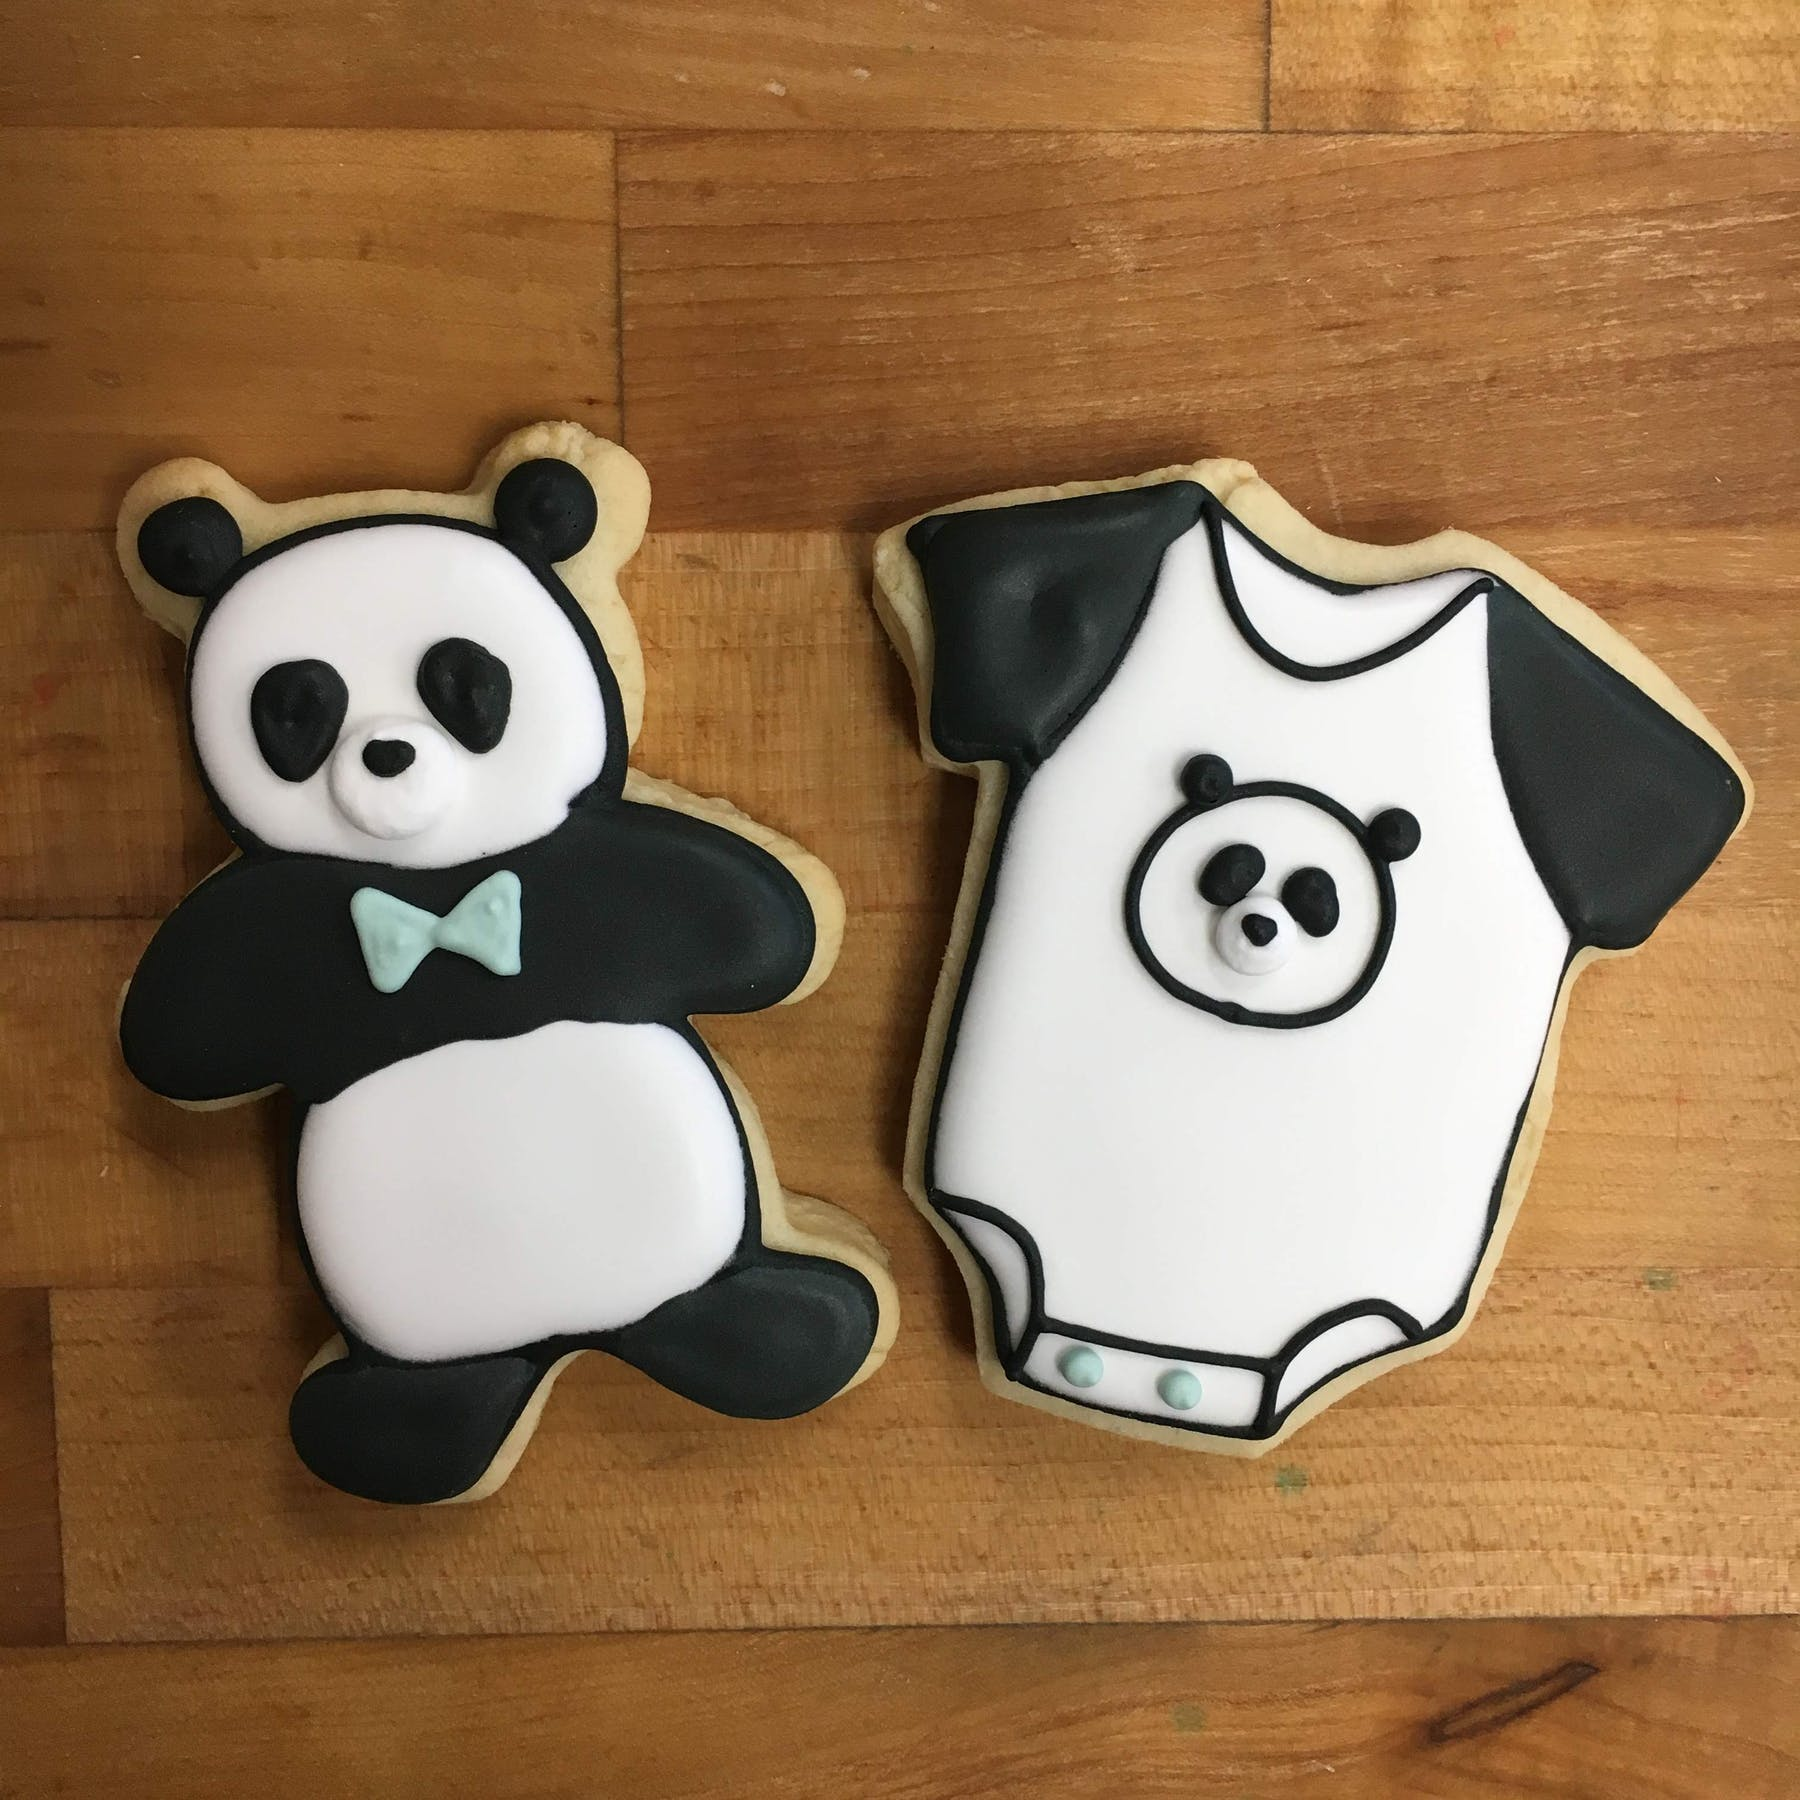 cookies shaped in the form of a panda